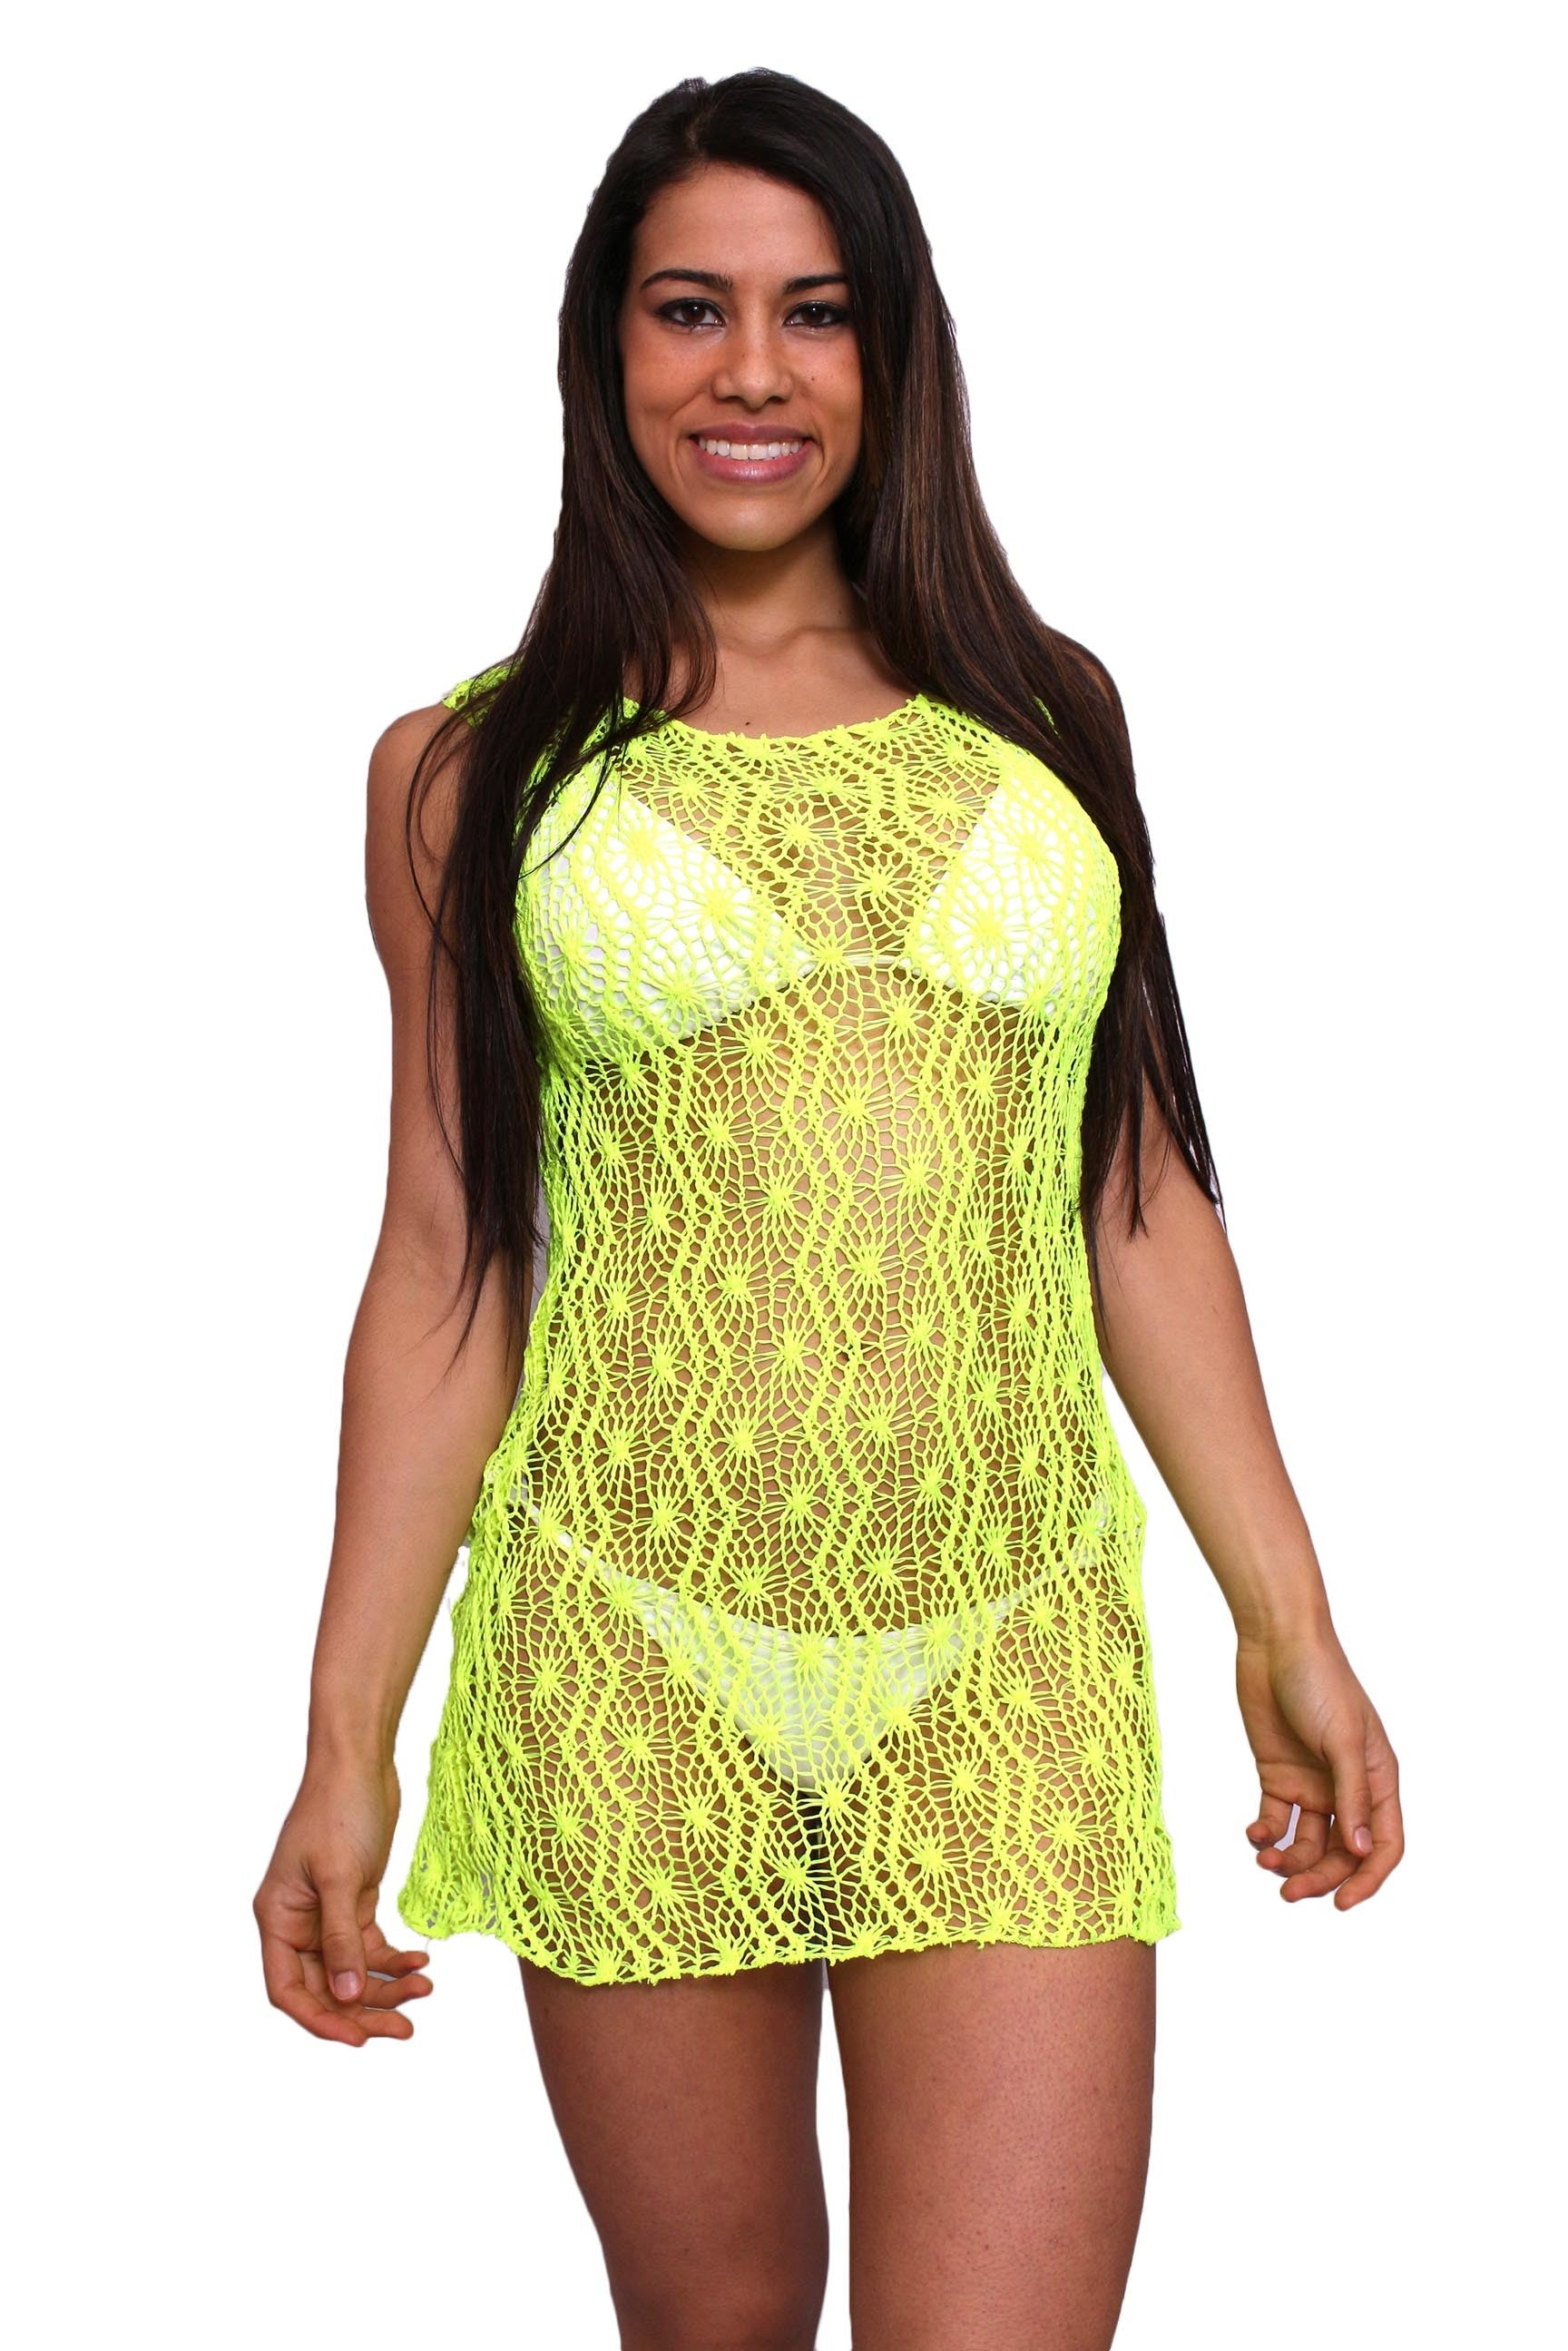 Women's Spider Tank Swimwear Cover-up Beach Dress: NEON YELLOW